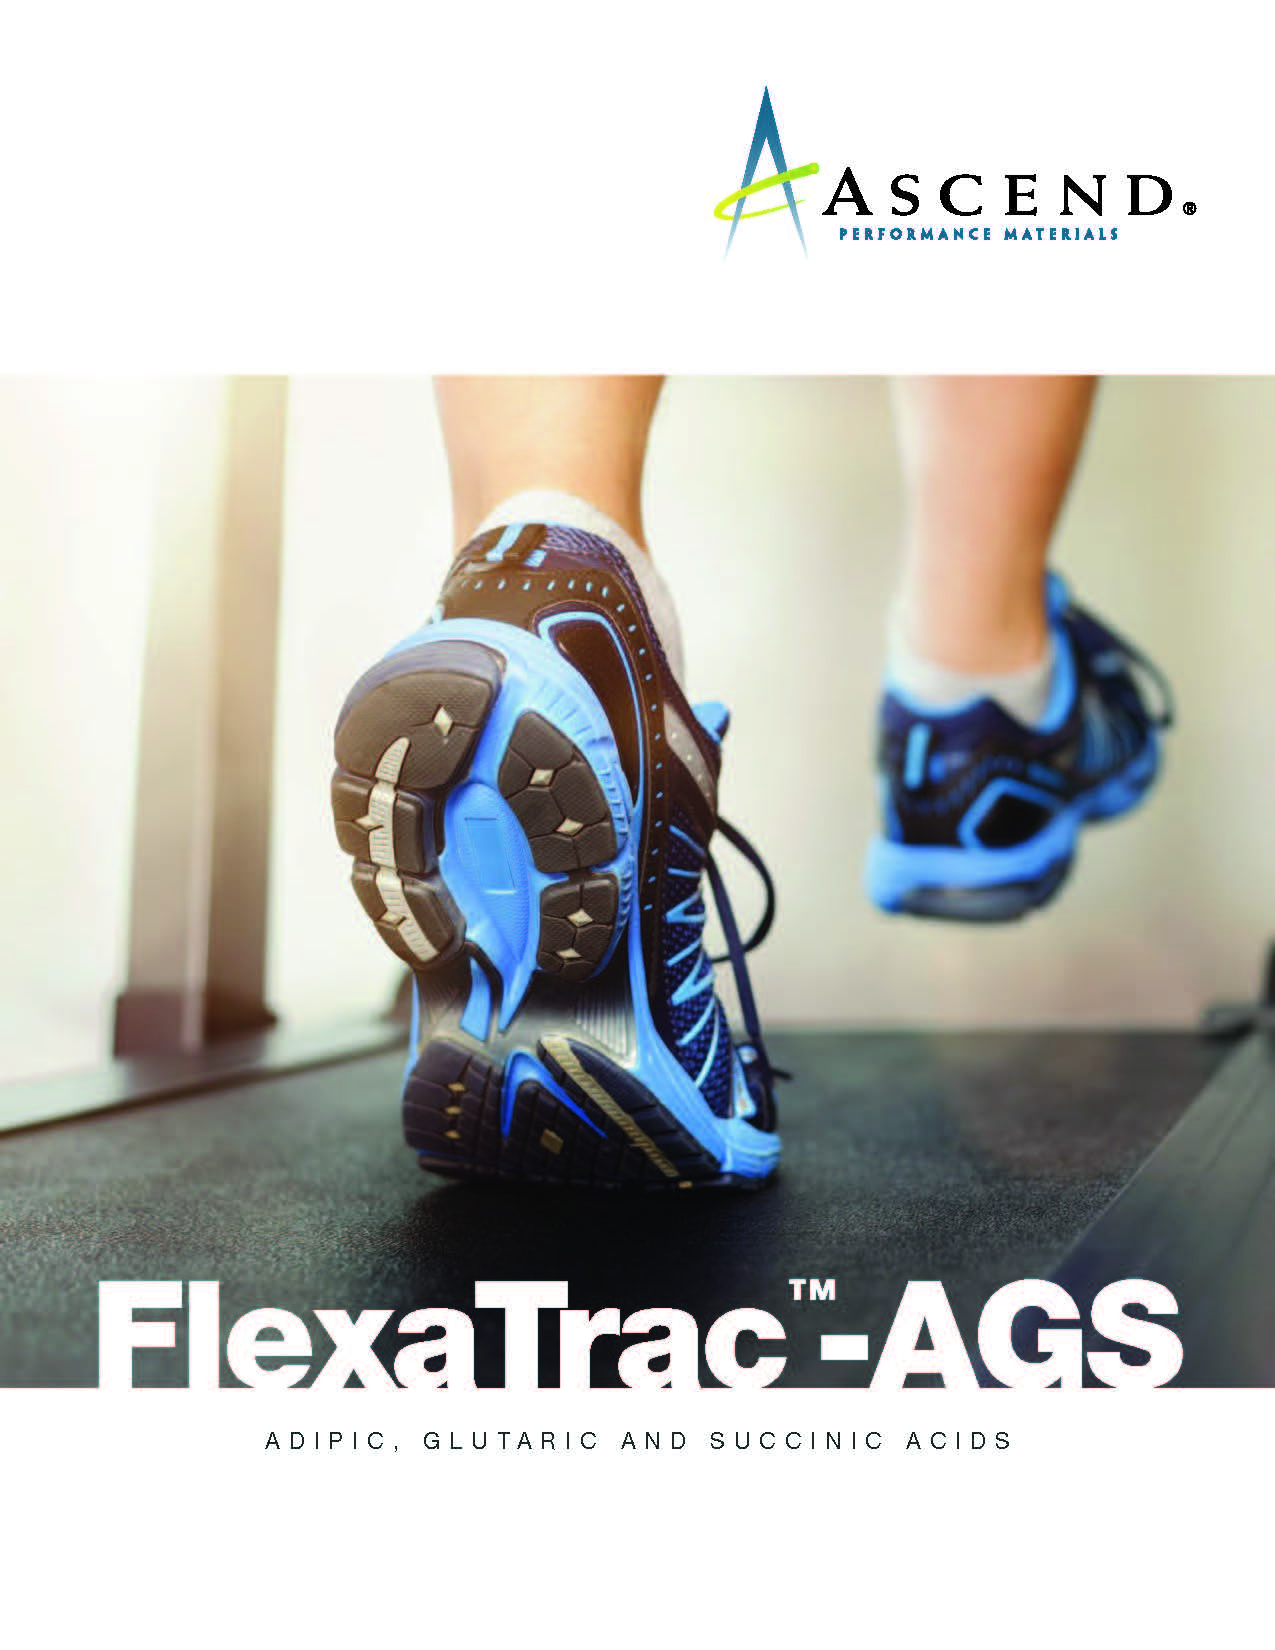 FlexaTrac®-AGS adipic, glutaric and succinic acids